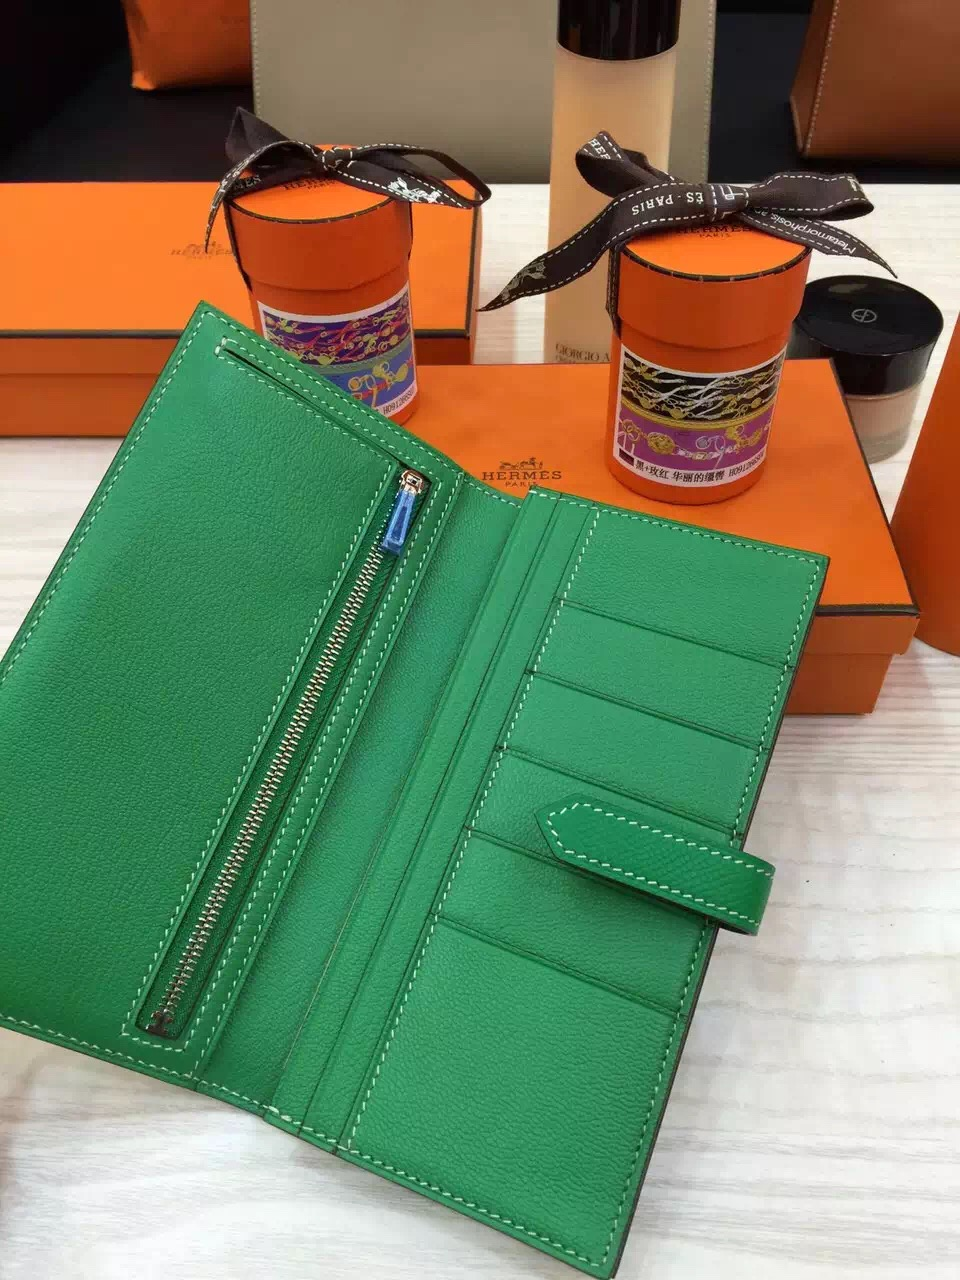 Luxury Hermes Bearn Wallet Long Purse Bamboo Green Epsom Leather Ladies' Clutch